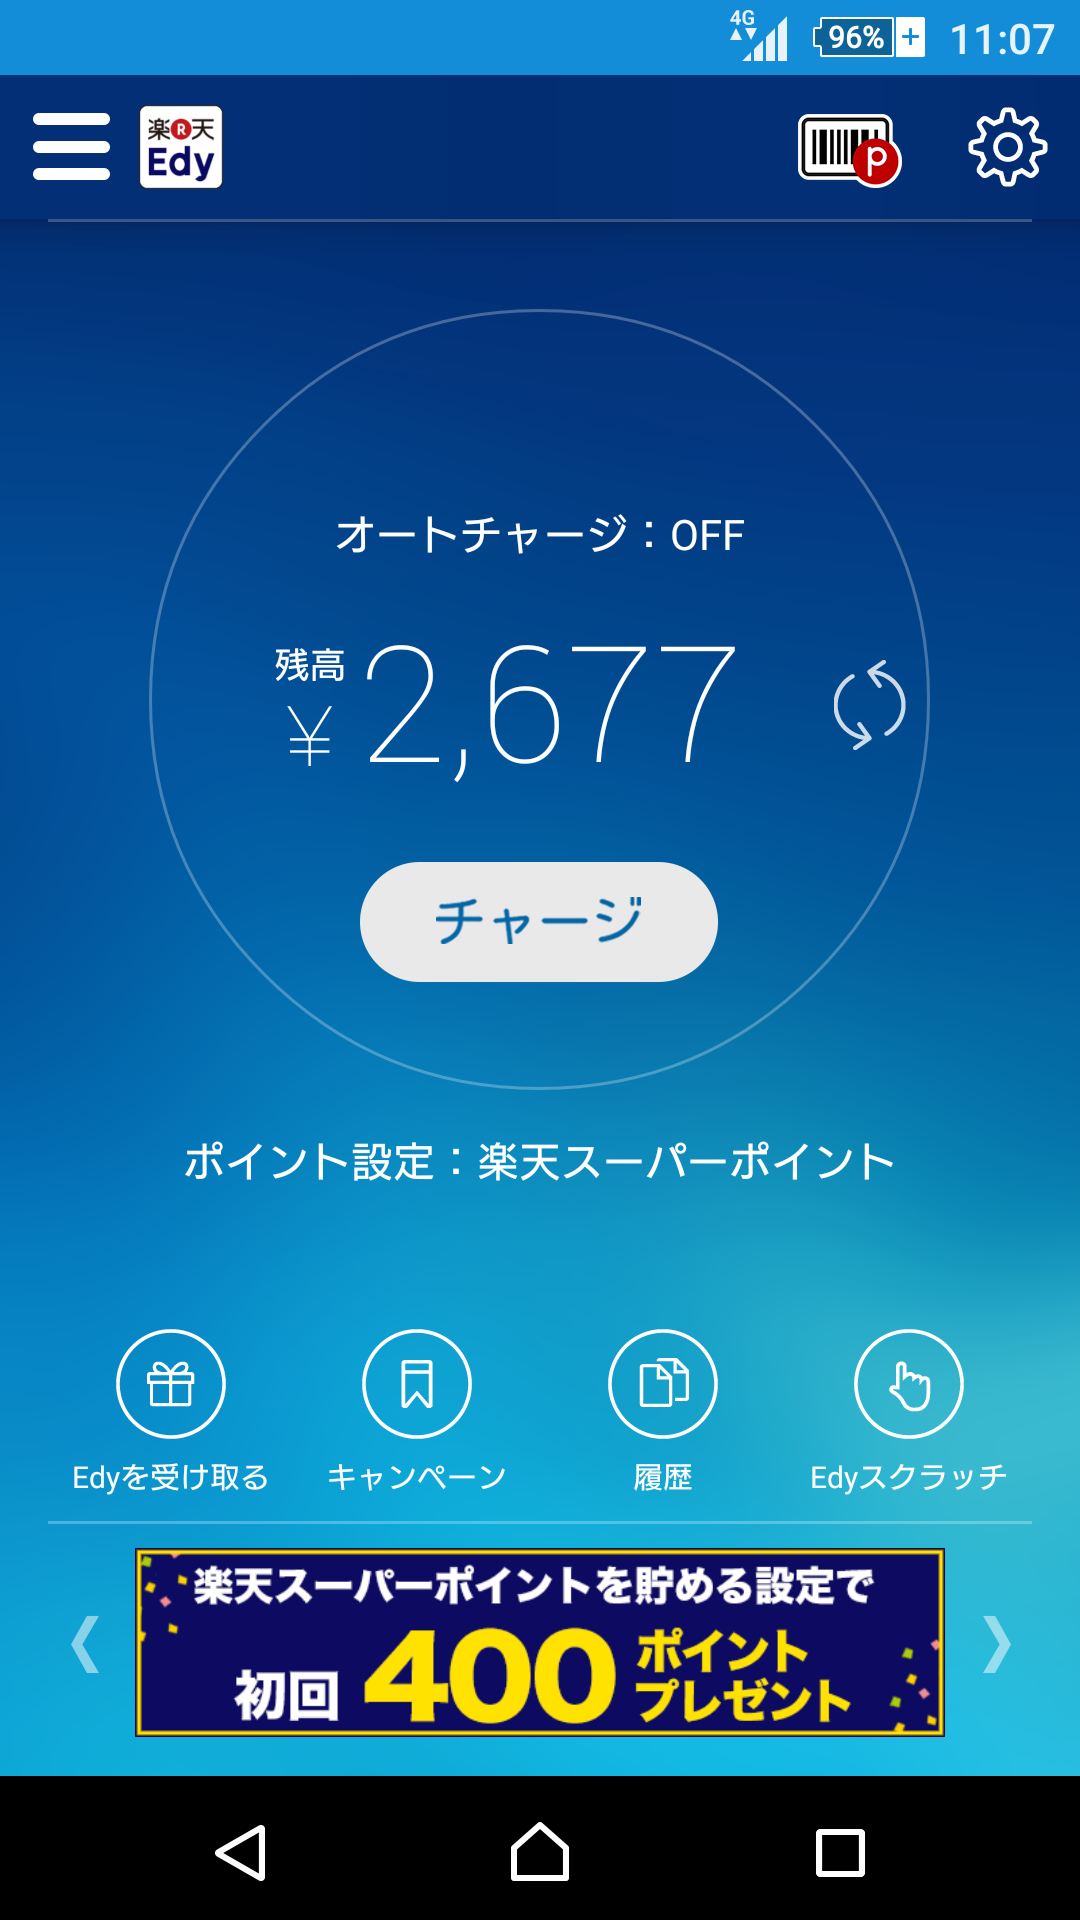 Screenshot_2015-09-17-11-07-31.png